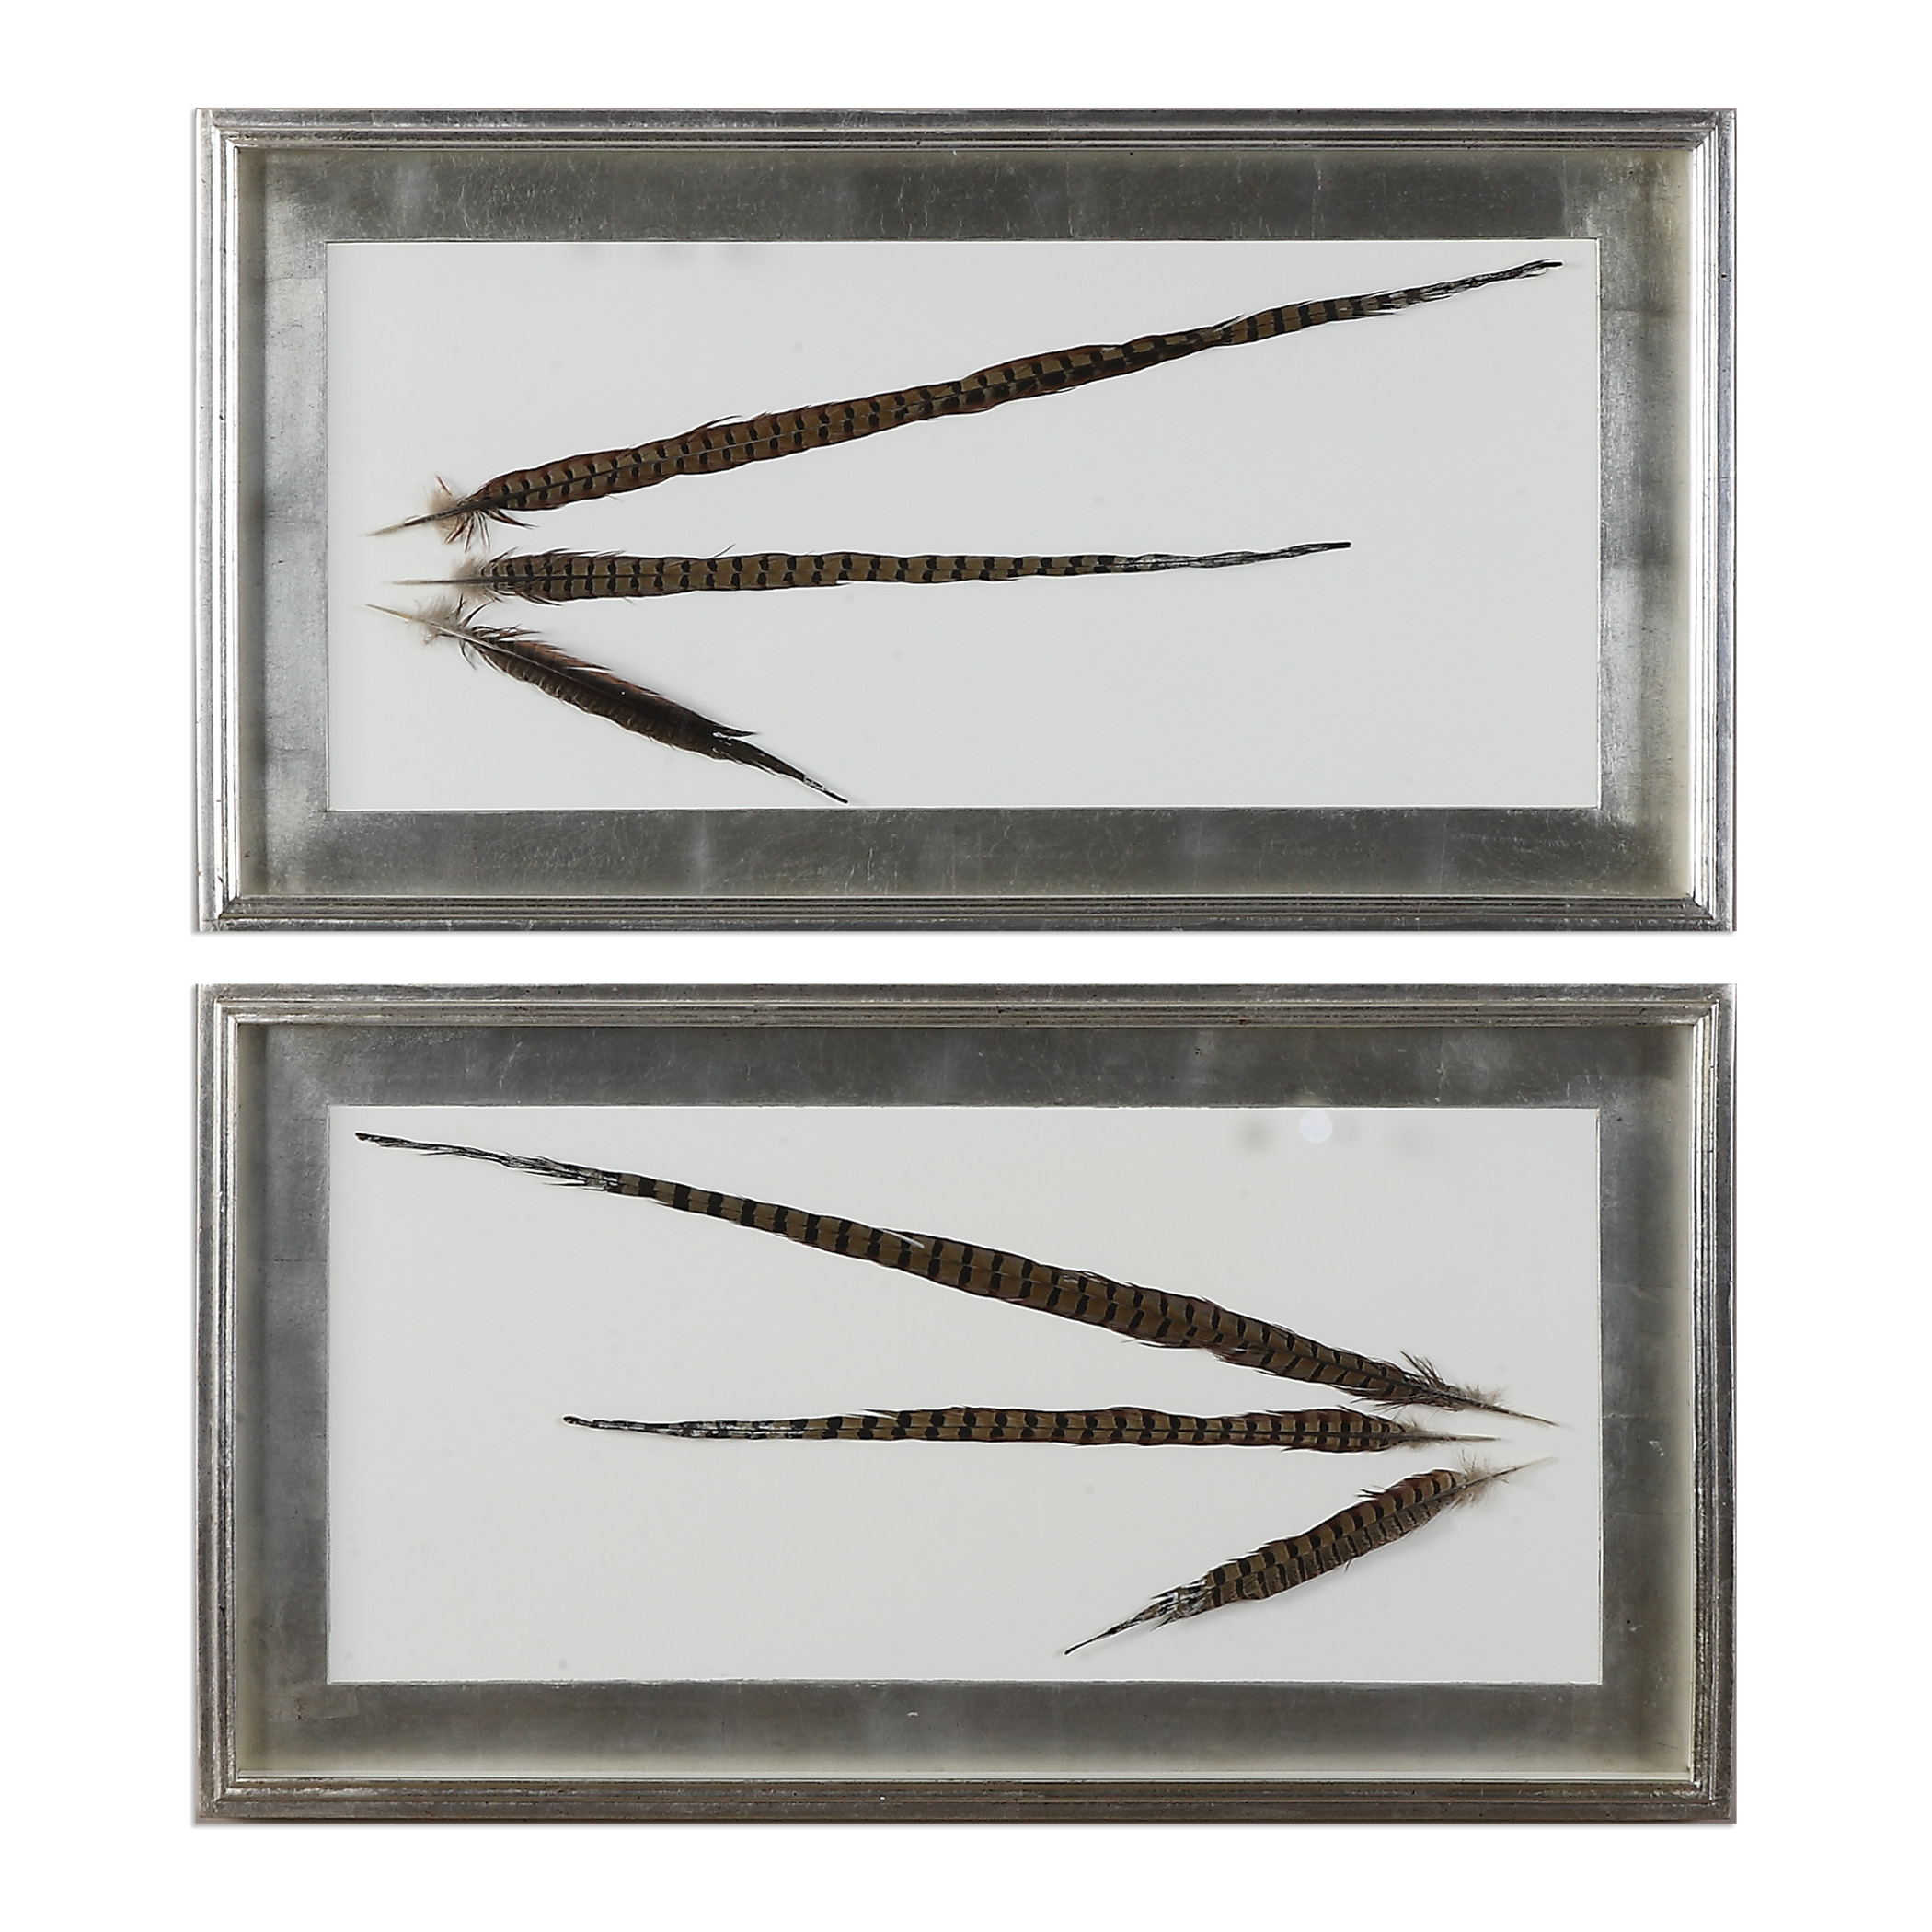 Uttermost Art Pheasant Feathers Wall Art S/2 - Item Number: 36201